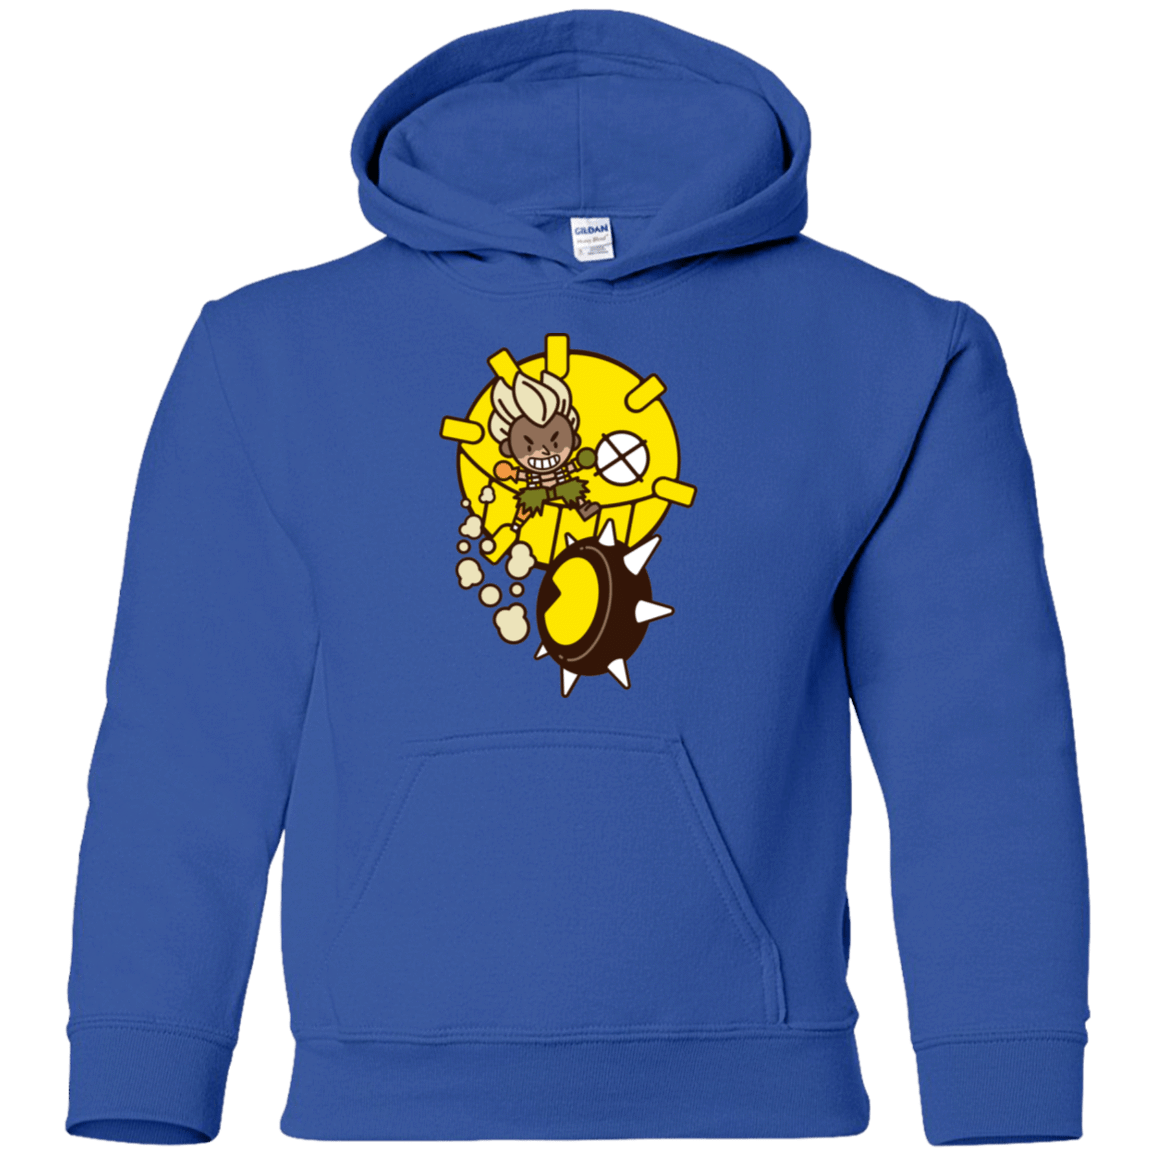 Sweatshirts Royal / YS Fire in the Hole Youth Hoodie